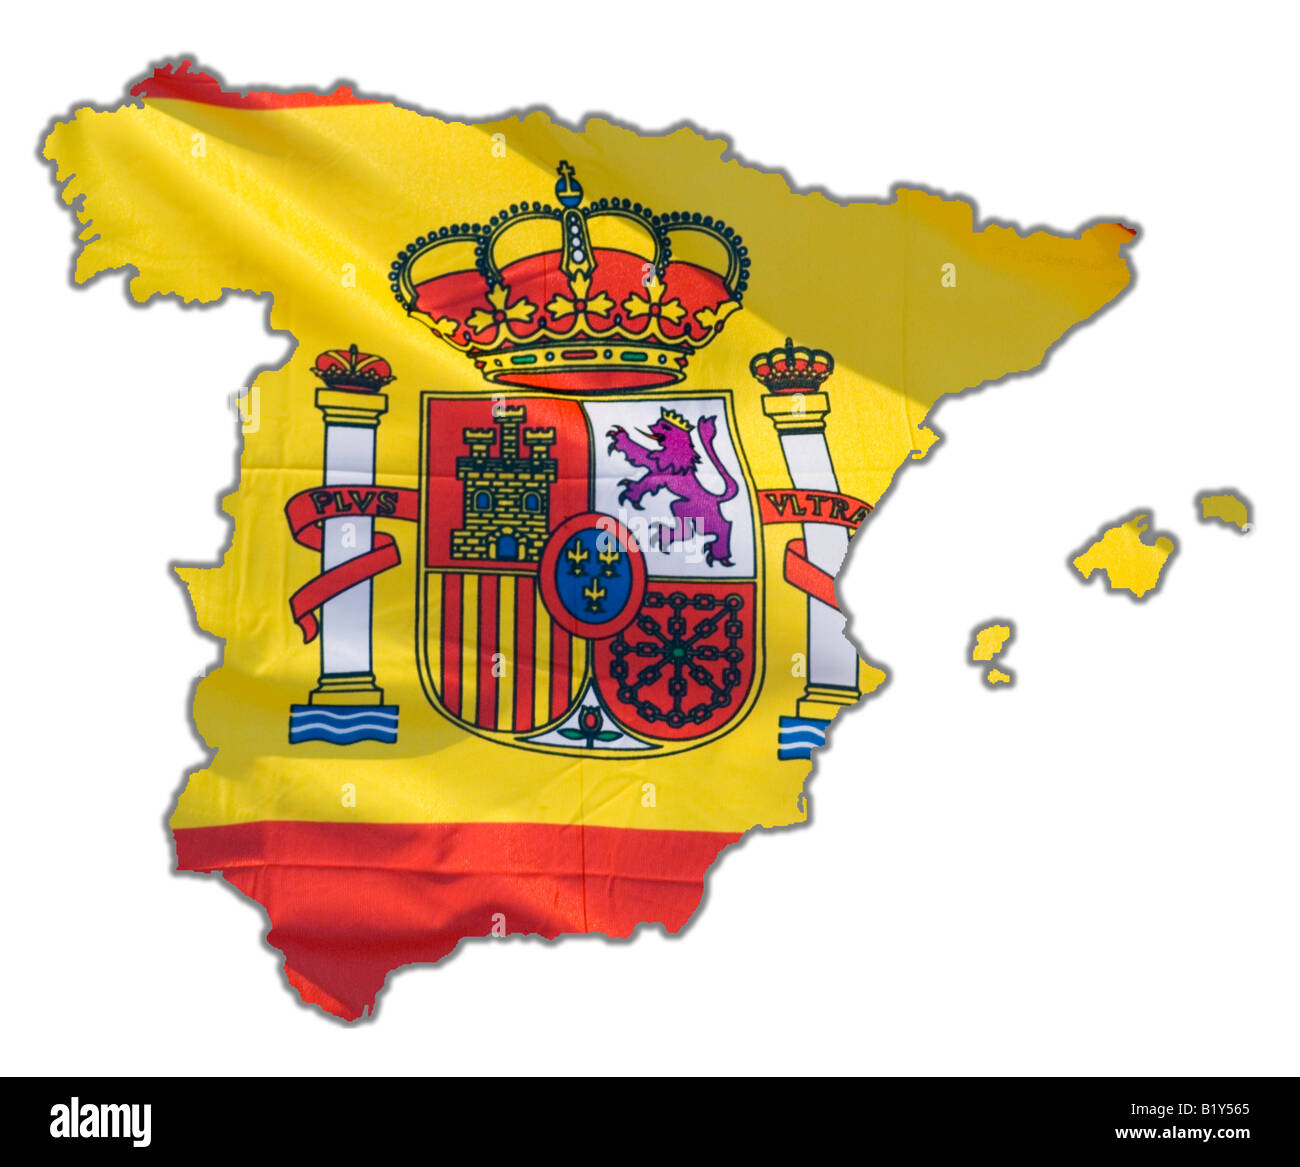 Map Outline of Spain - Stock Image